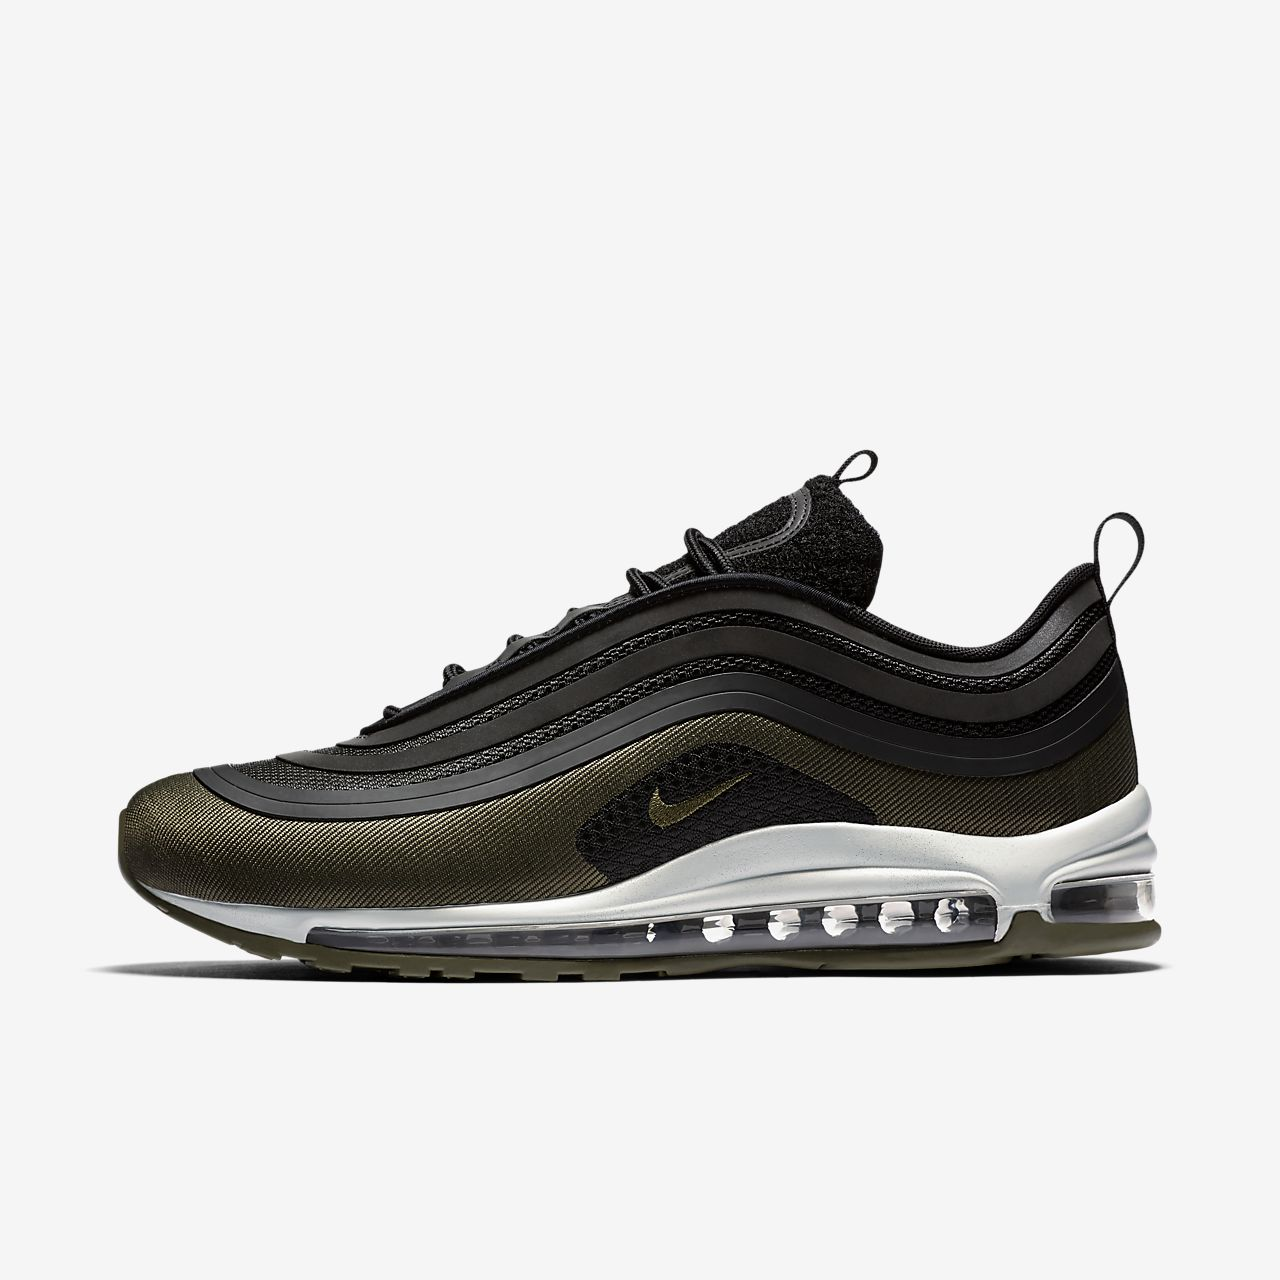 NIKE AIR MAX 97 PREMIUM SE / BLACK Deadstock.ca